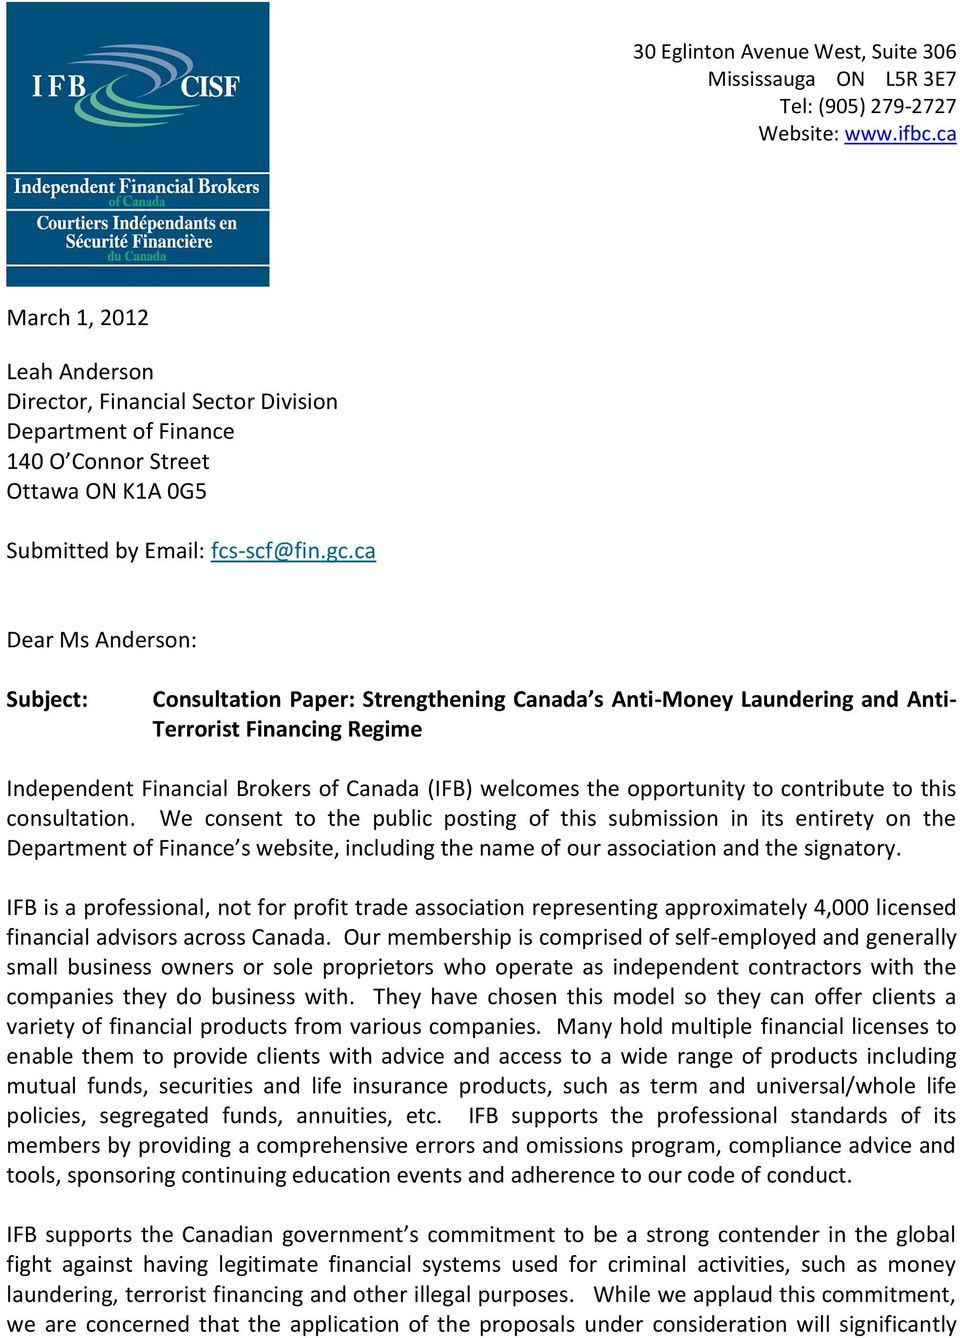 an opinion paper on government of canada Us federal government and economic issues - this paper relates to what i canada's federal government law enforcement techniques, and public opinion.